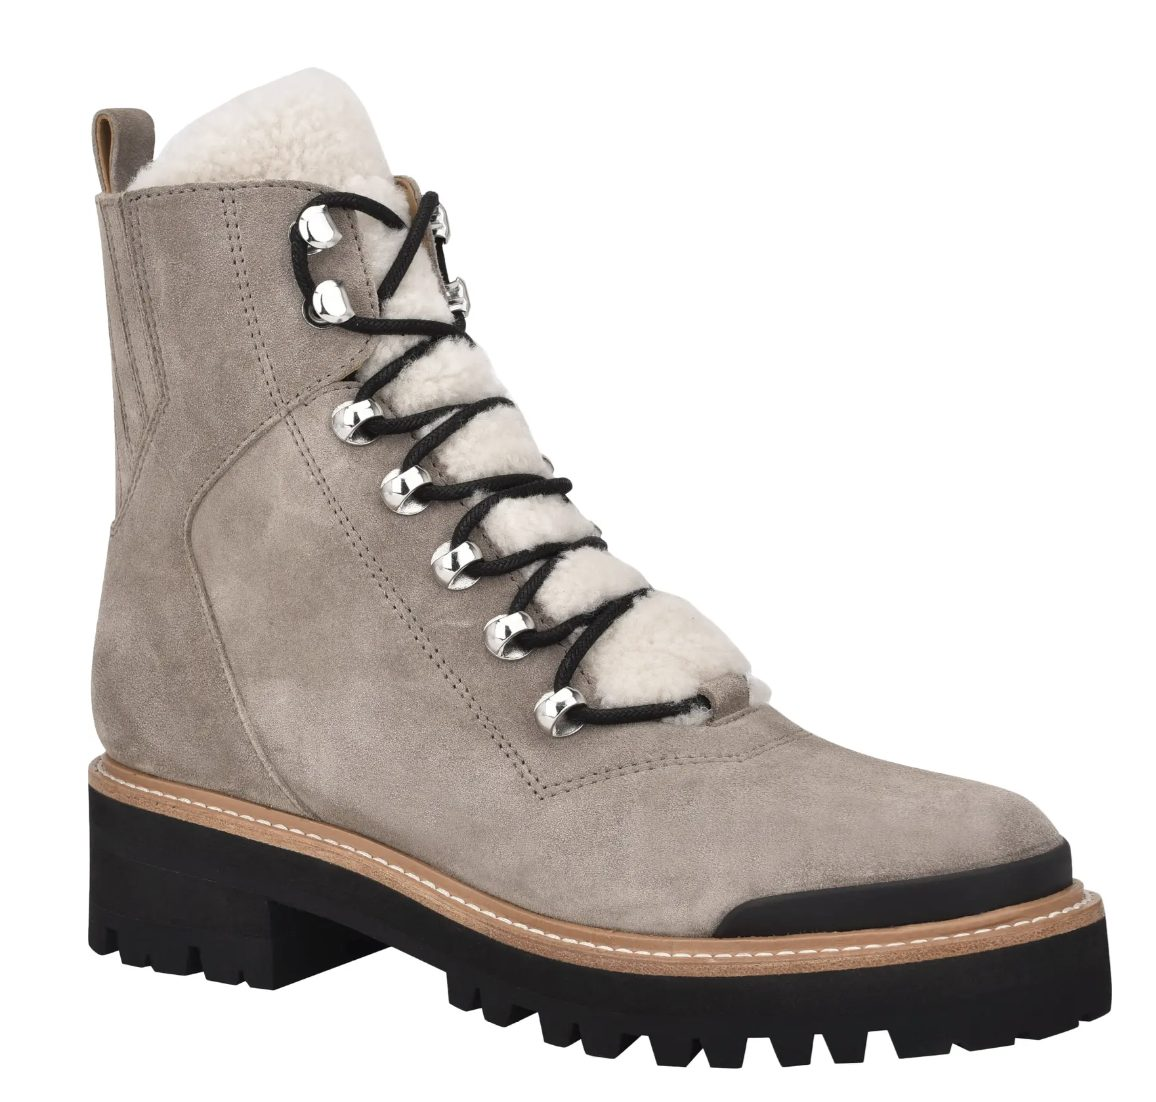 Taupe lace-up boots made of suede and fur